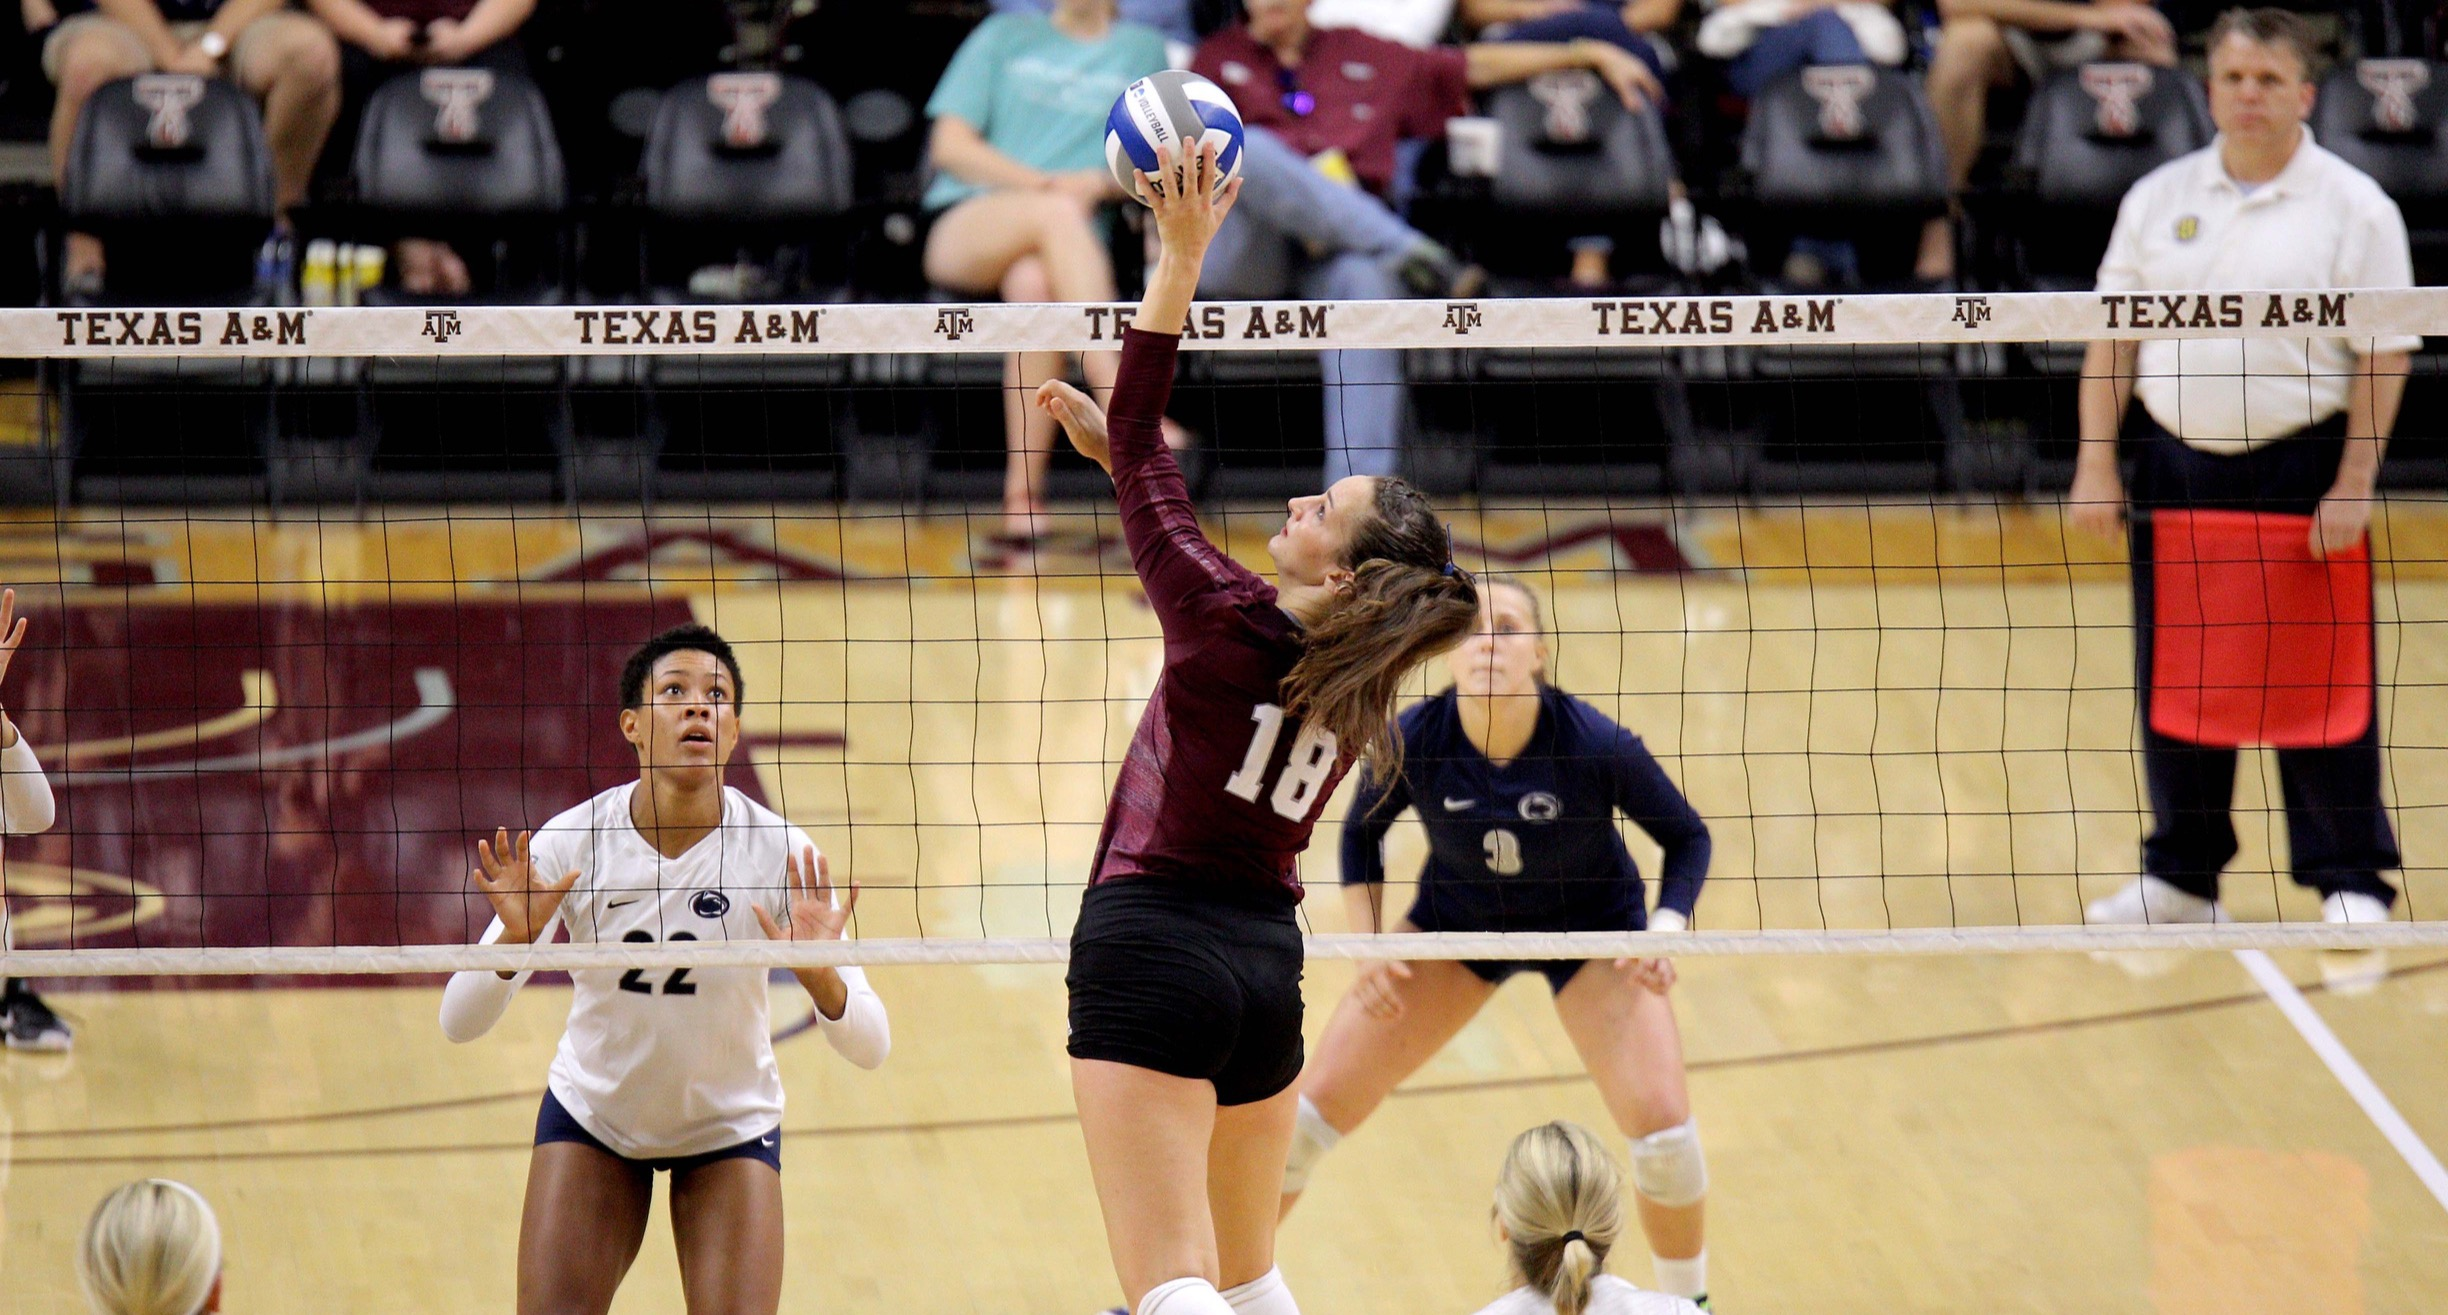 Camille Conner Texas A&M 2017